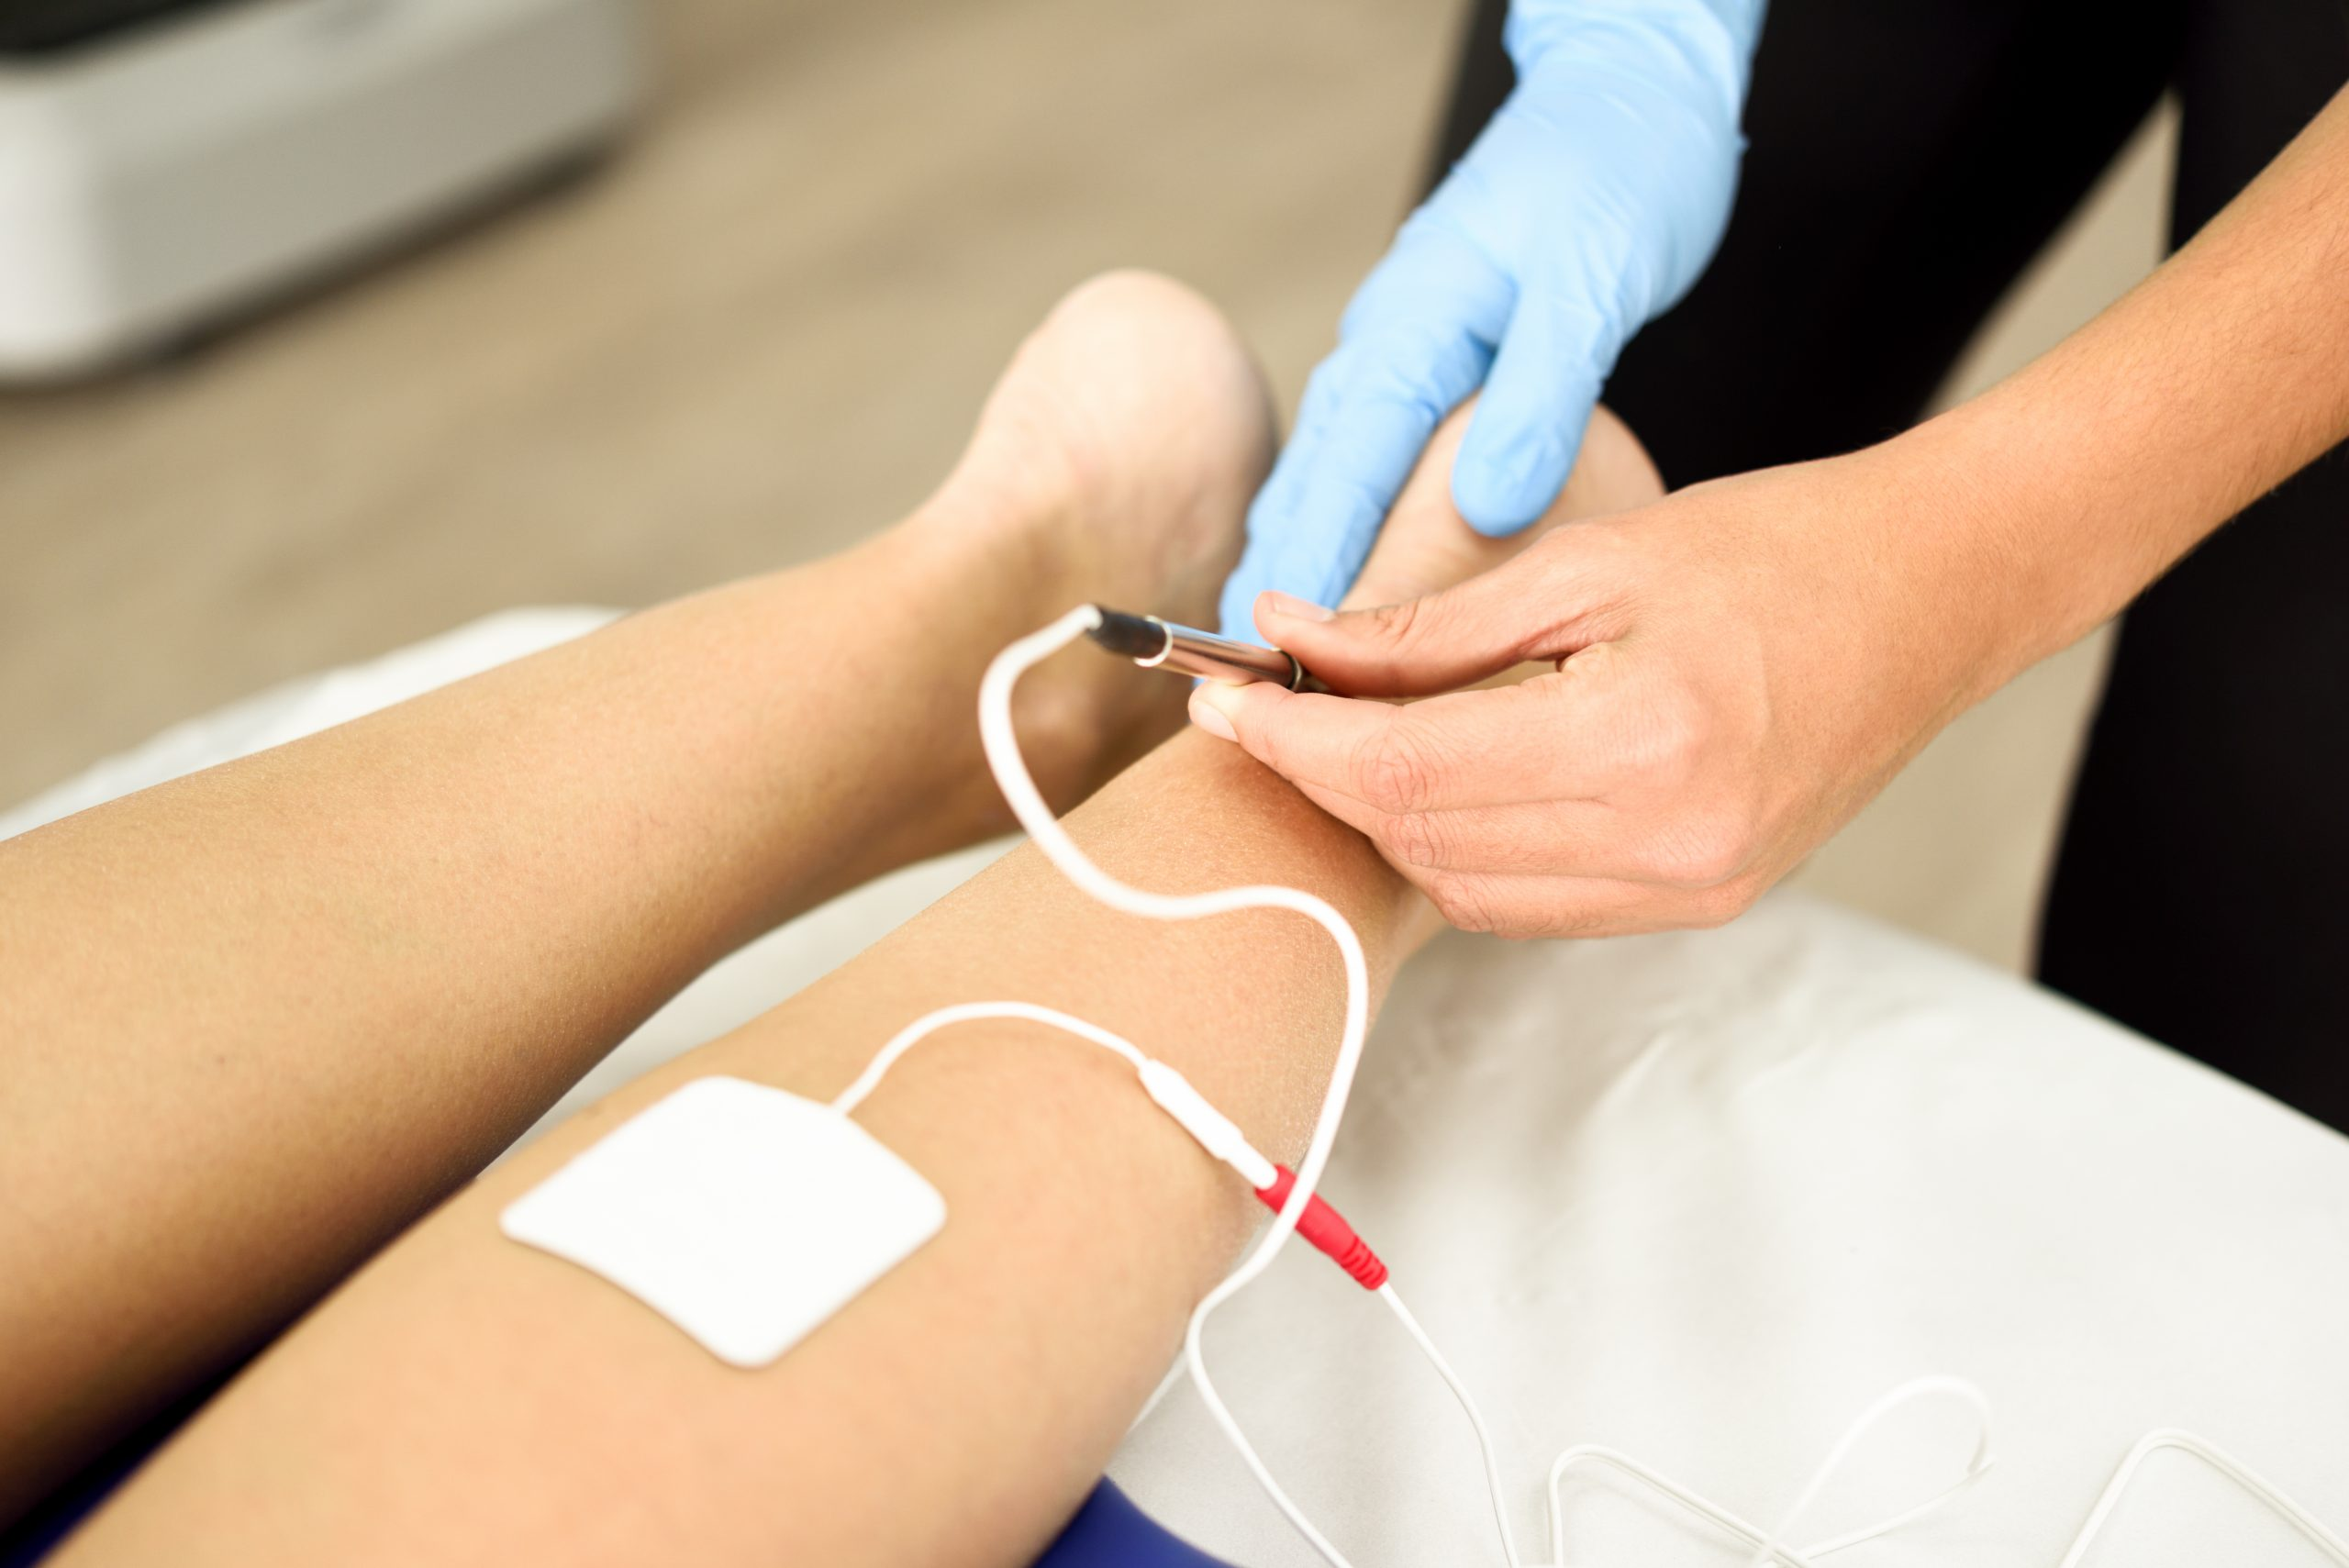 Electroacupuncture dry with needle connecting machine used by acupunturist on female patient for acupuncture guided by EPI Intratissue Percutaneous Electrolisis. Electro stimulation in physical therapy to ankle of a young woman in physiotherapy center.